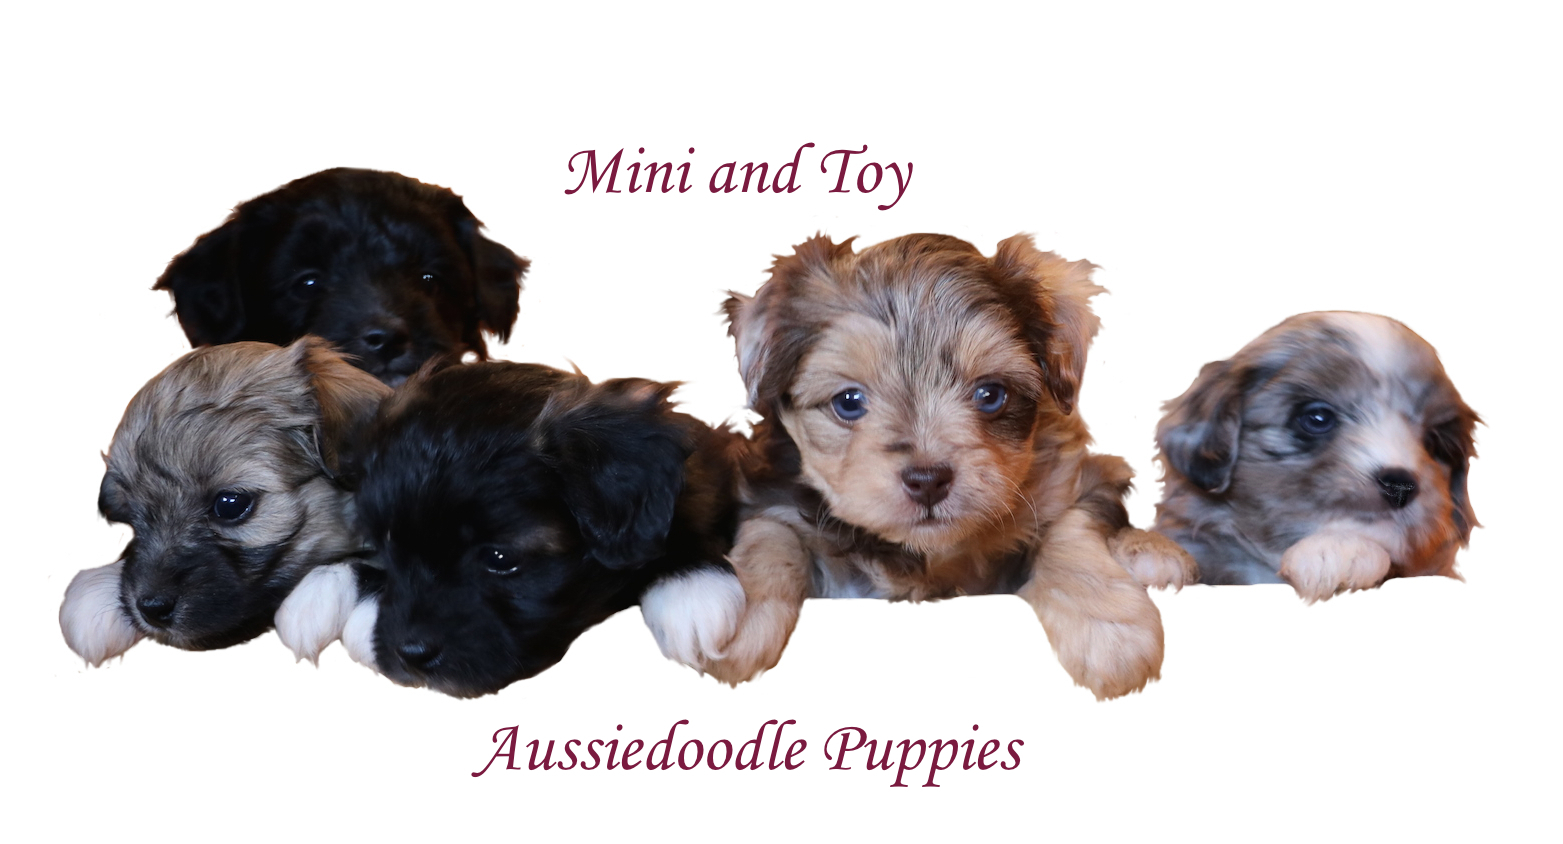 Quality Aussie Doodle Puppies for sale